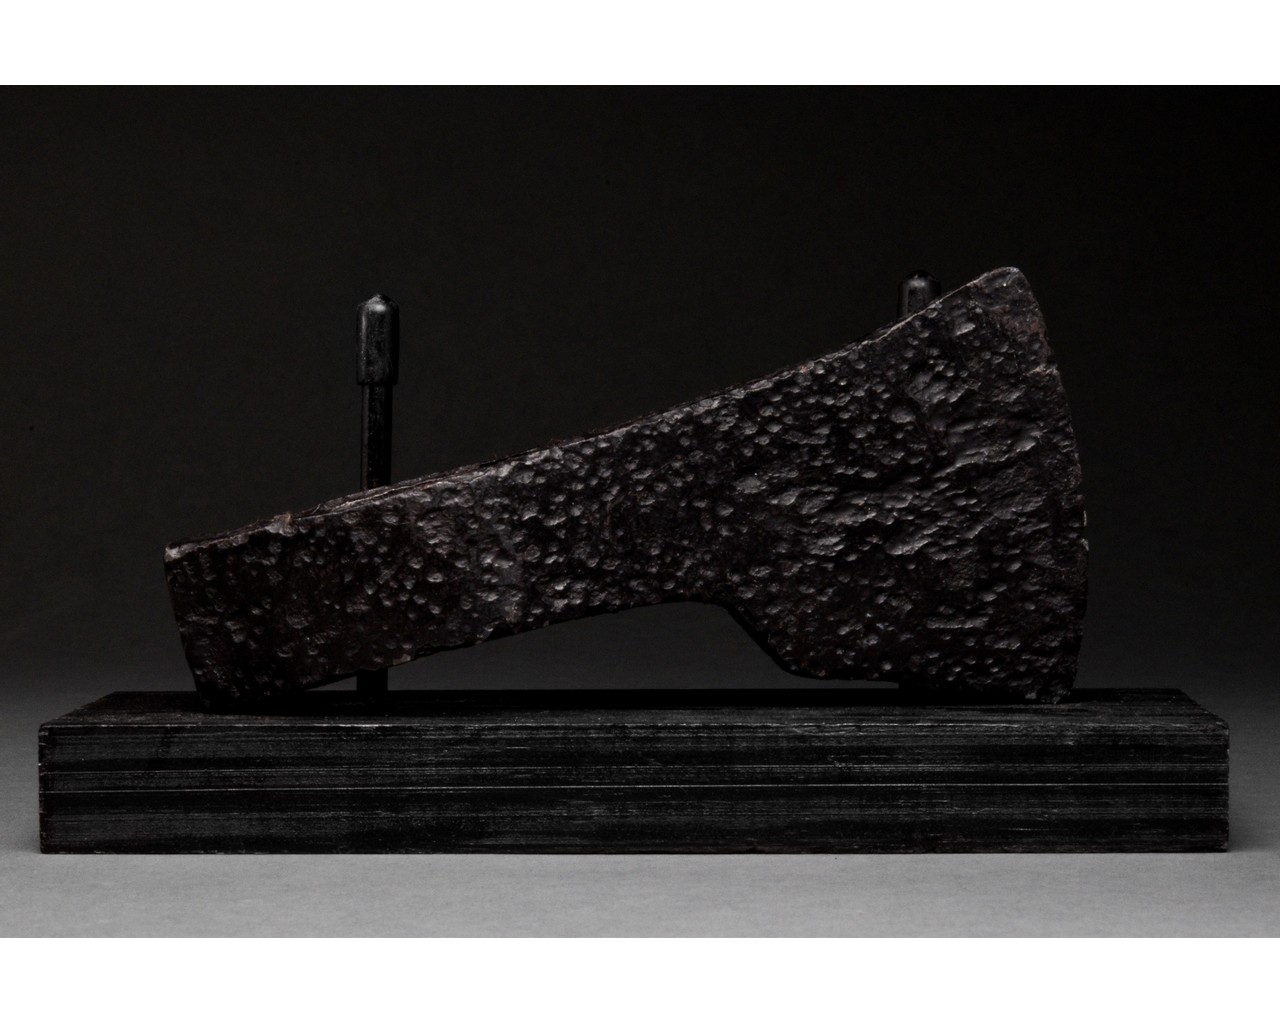 MEDIEVAL BATTLE IRON AXE HEAD WITH INLAID GOLD CROSS - Image 2 of 8